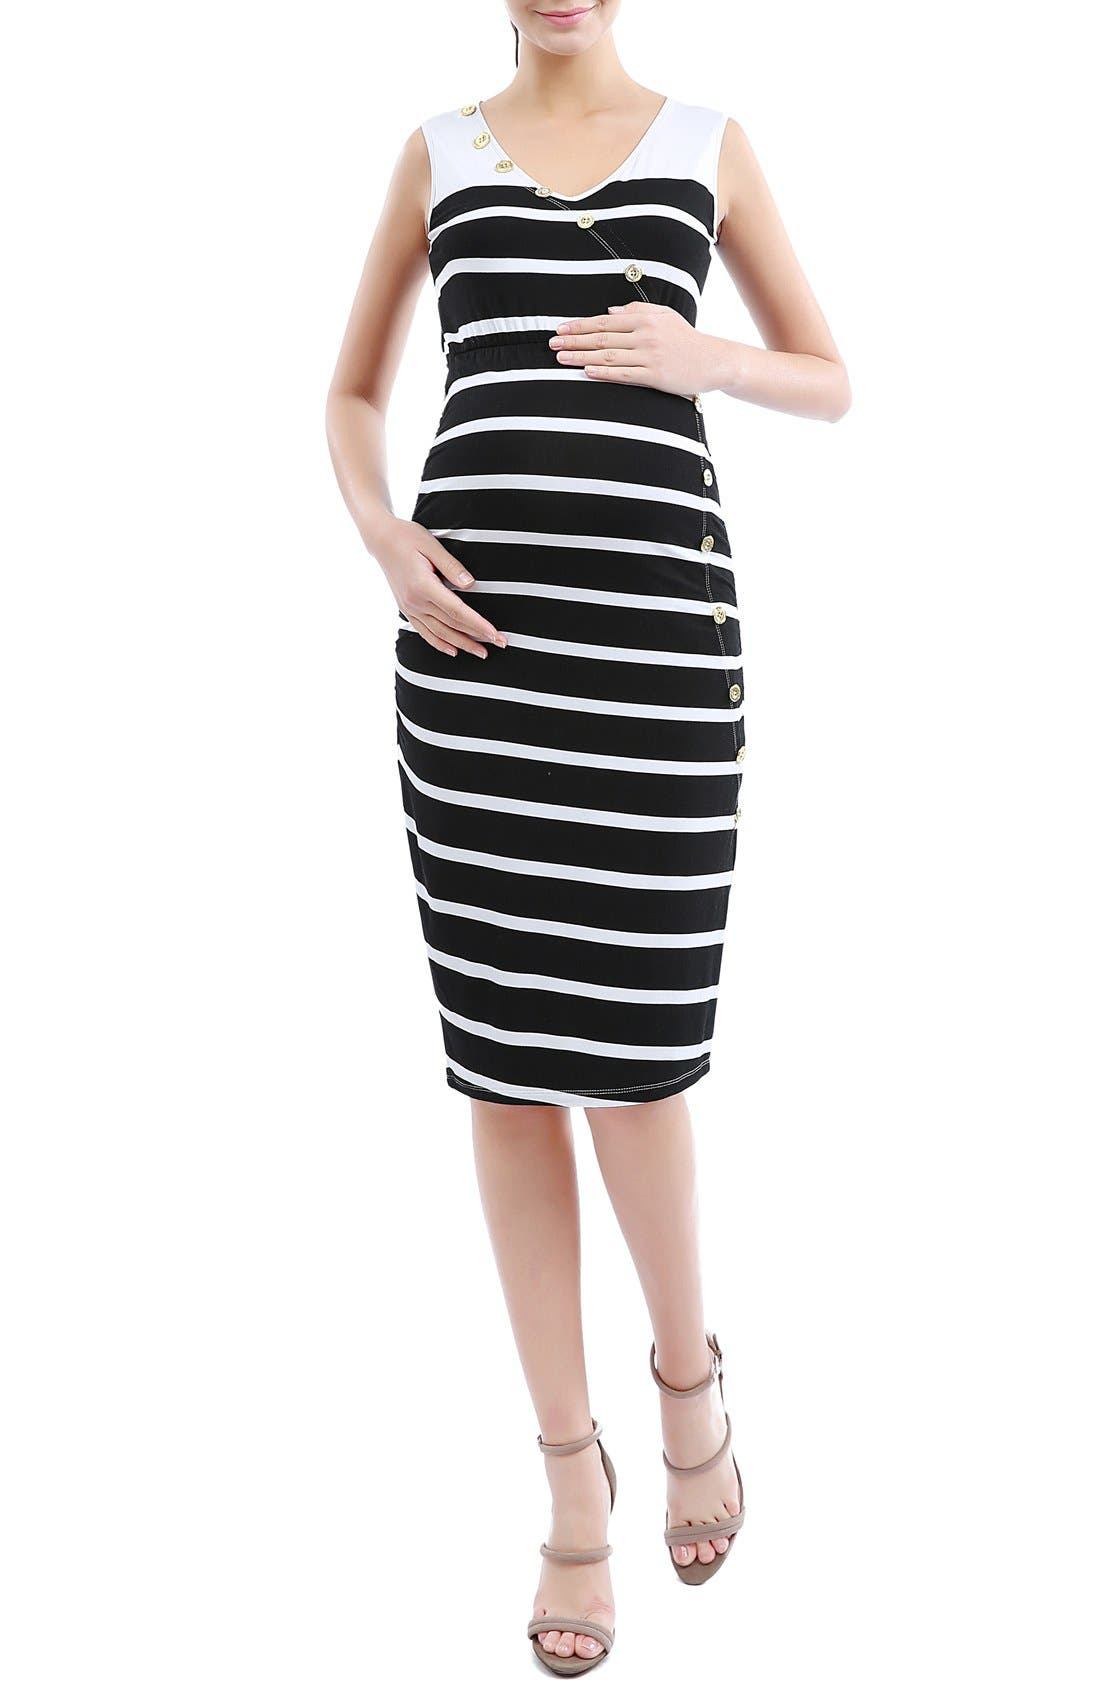 'Shea' Stripe Maternity Dress,                             Main thumbnail 1, color,                             Black/ White